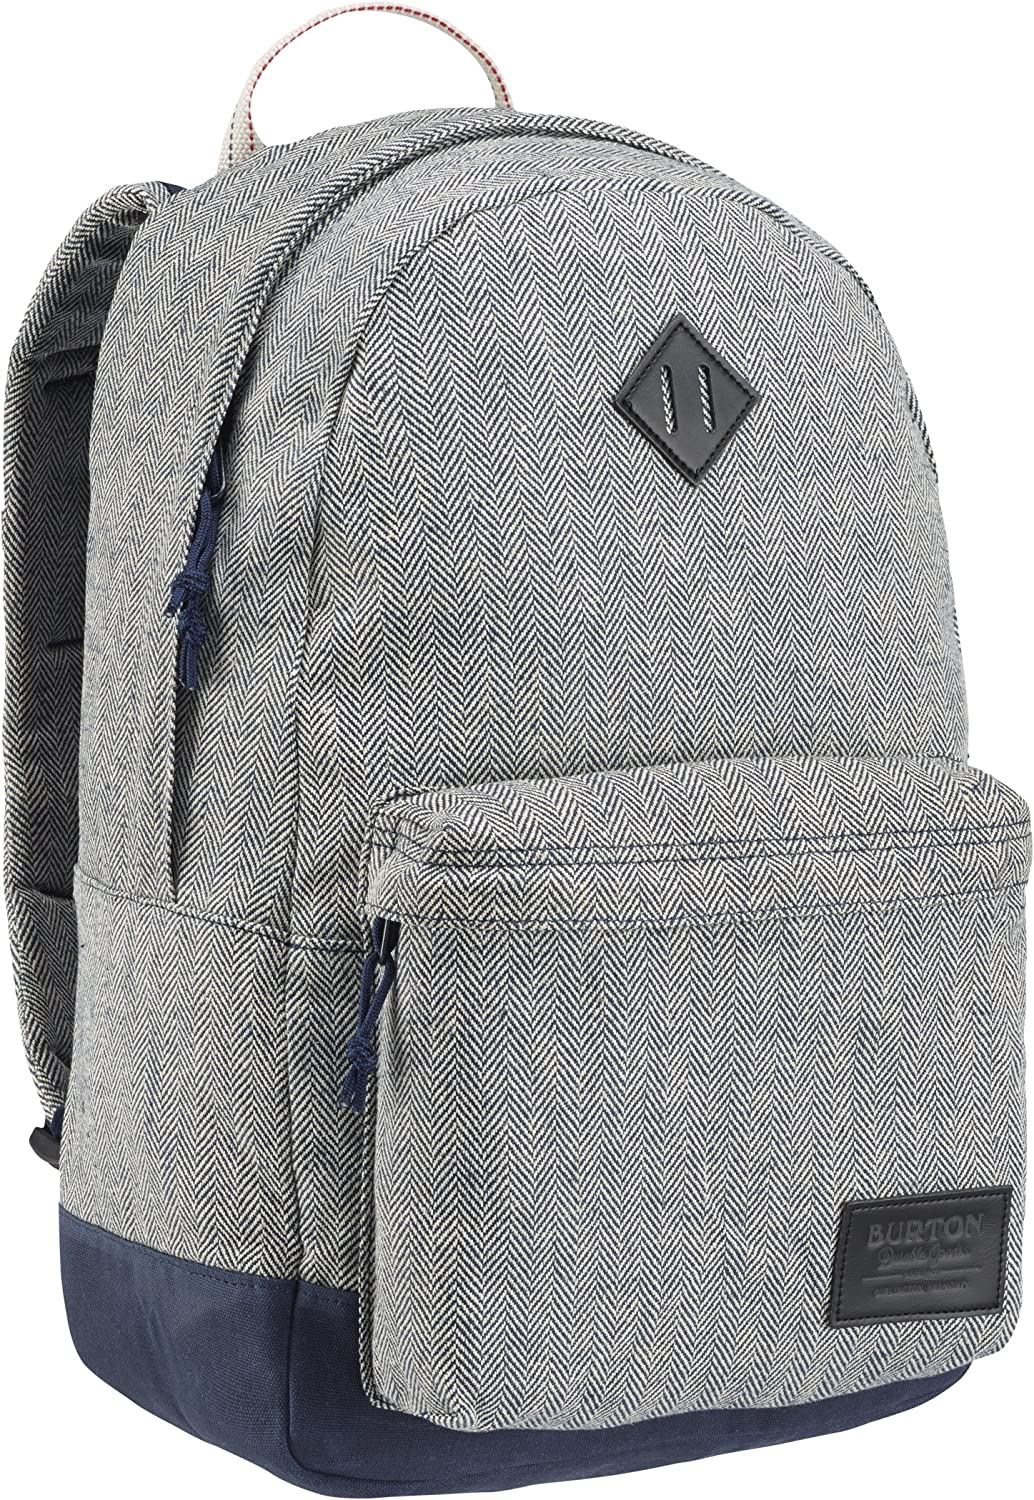 [バートン] BURTON リュック KETTLE PACK [20L] B07255FVQW ECLIPSE HERRINGBONE ECLIPSE HERRINGBONE